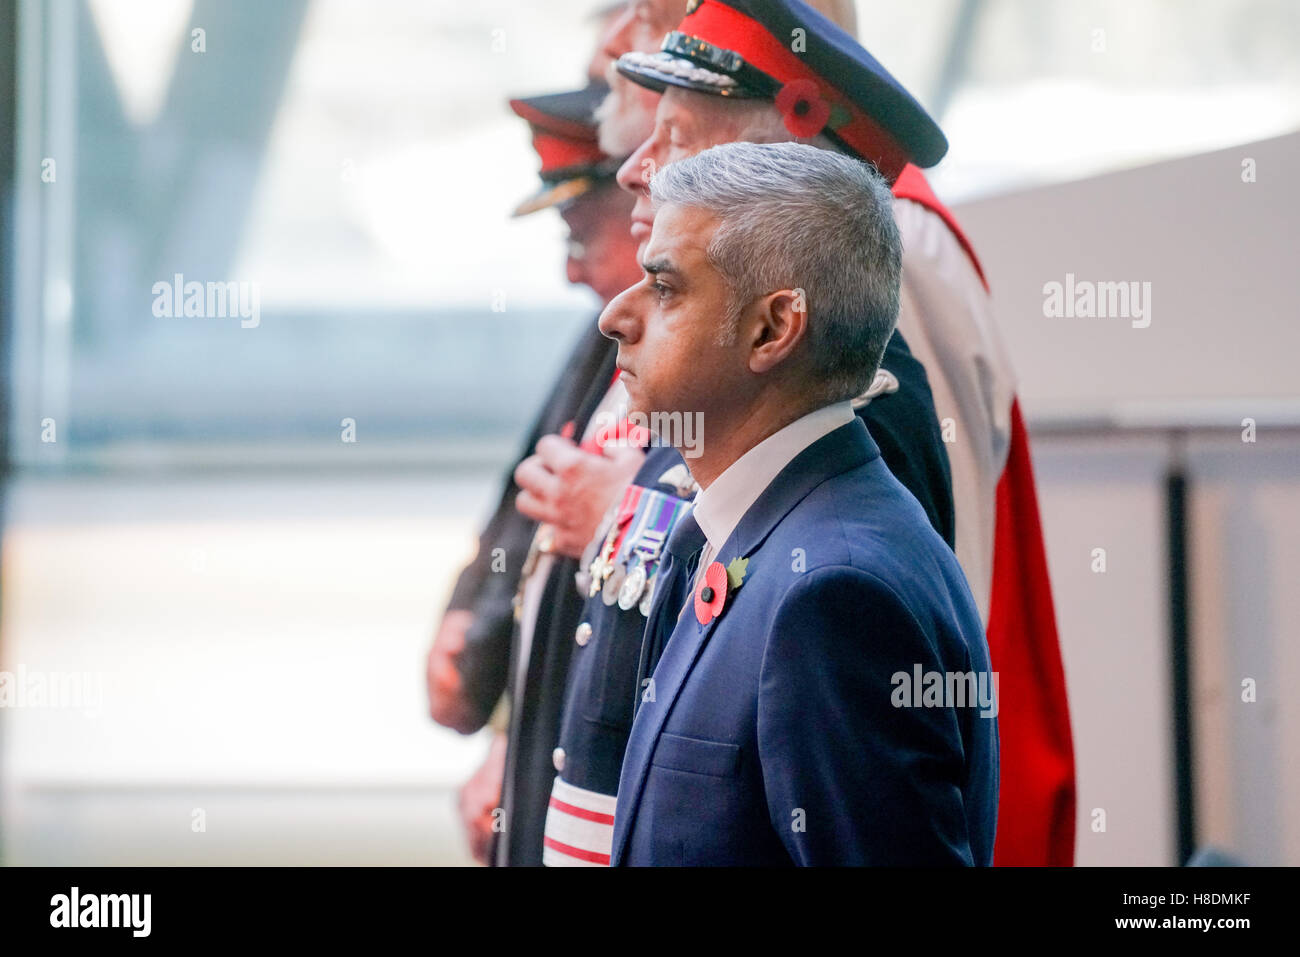 London, UK. 11th Nov, 2016. The The Mayor of London, Sadiq Khan, and Chairman of the London Assembly, Tony Arbour, - Stock Image